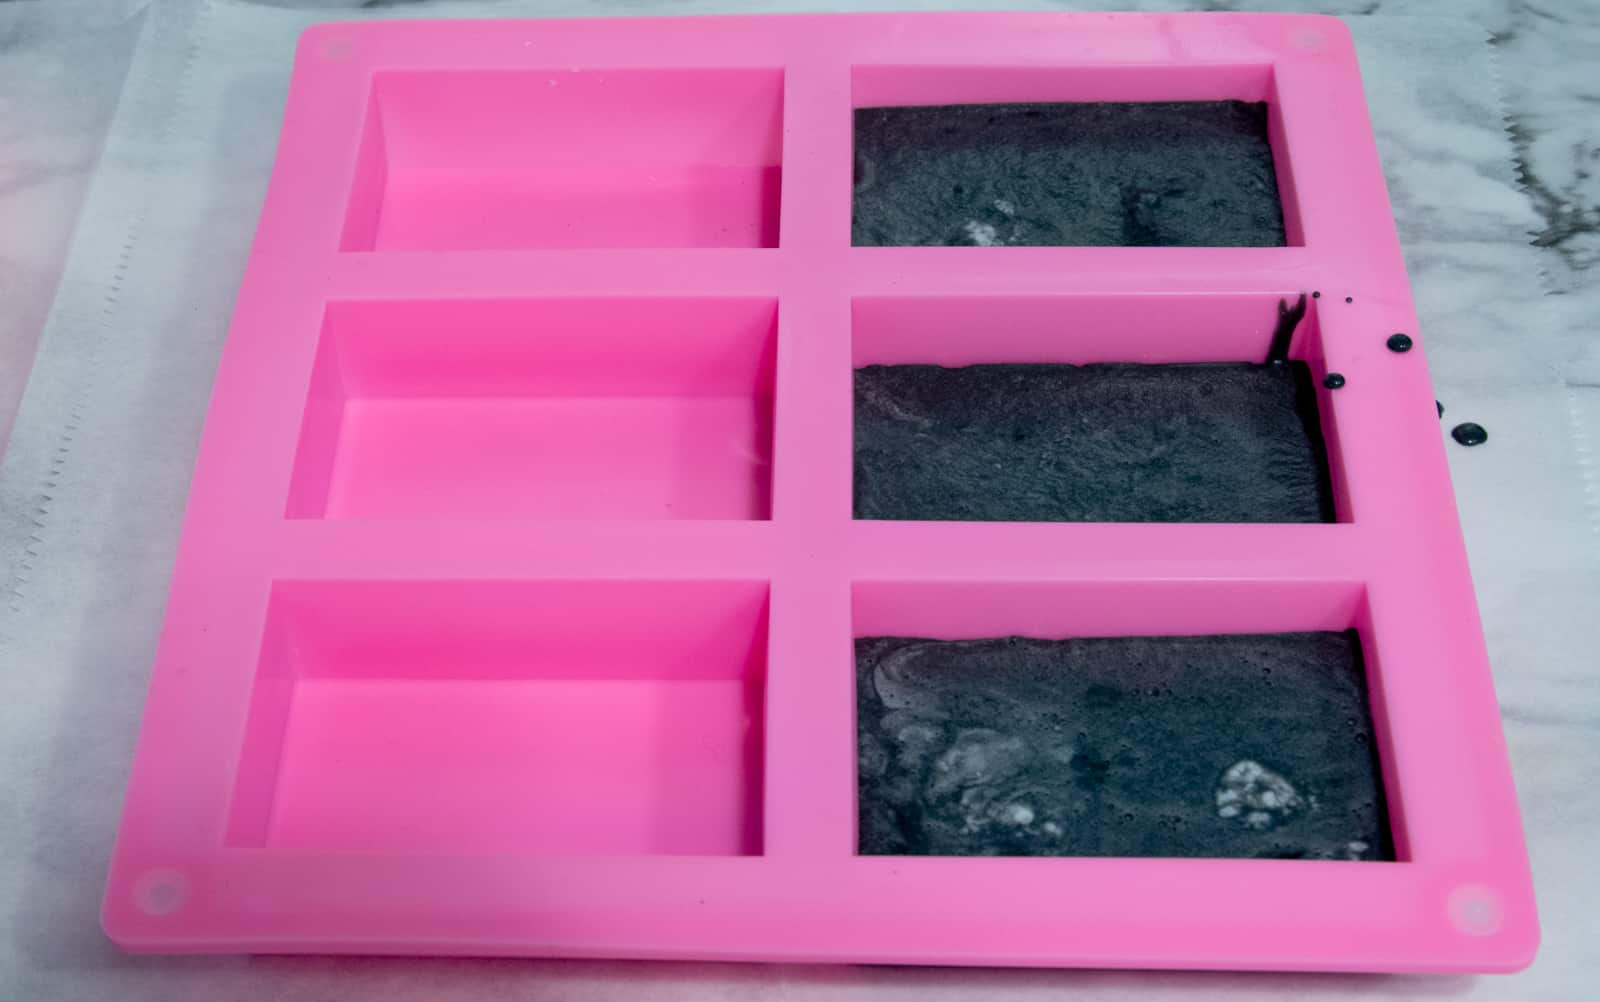 silicone molds partially filled with activated charcoal soap mixture